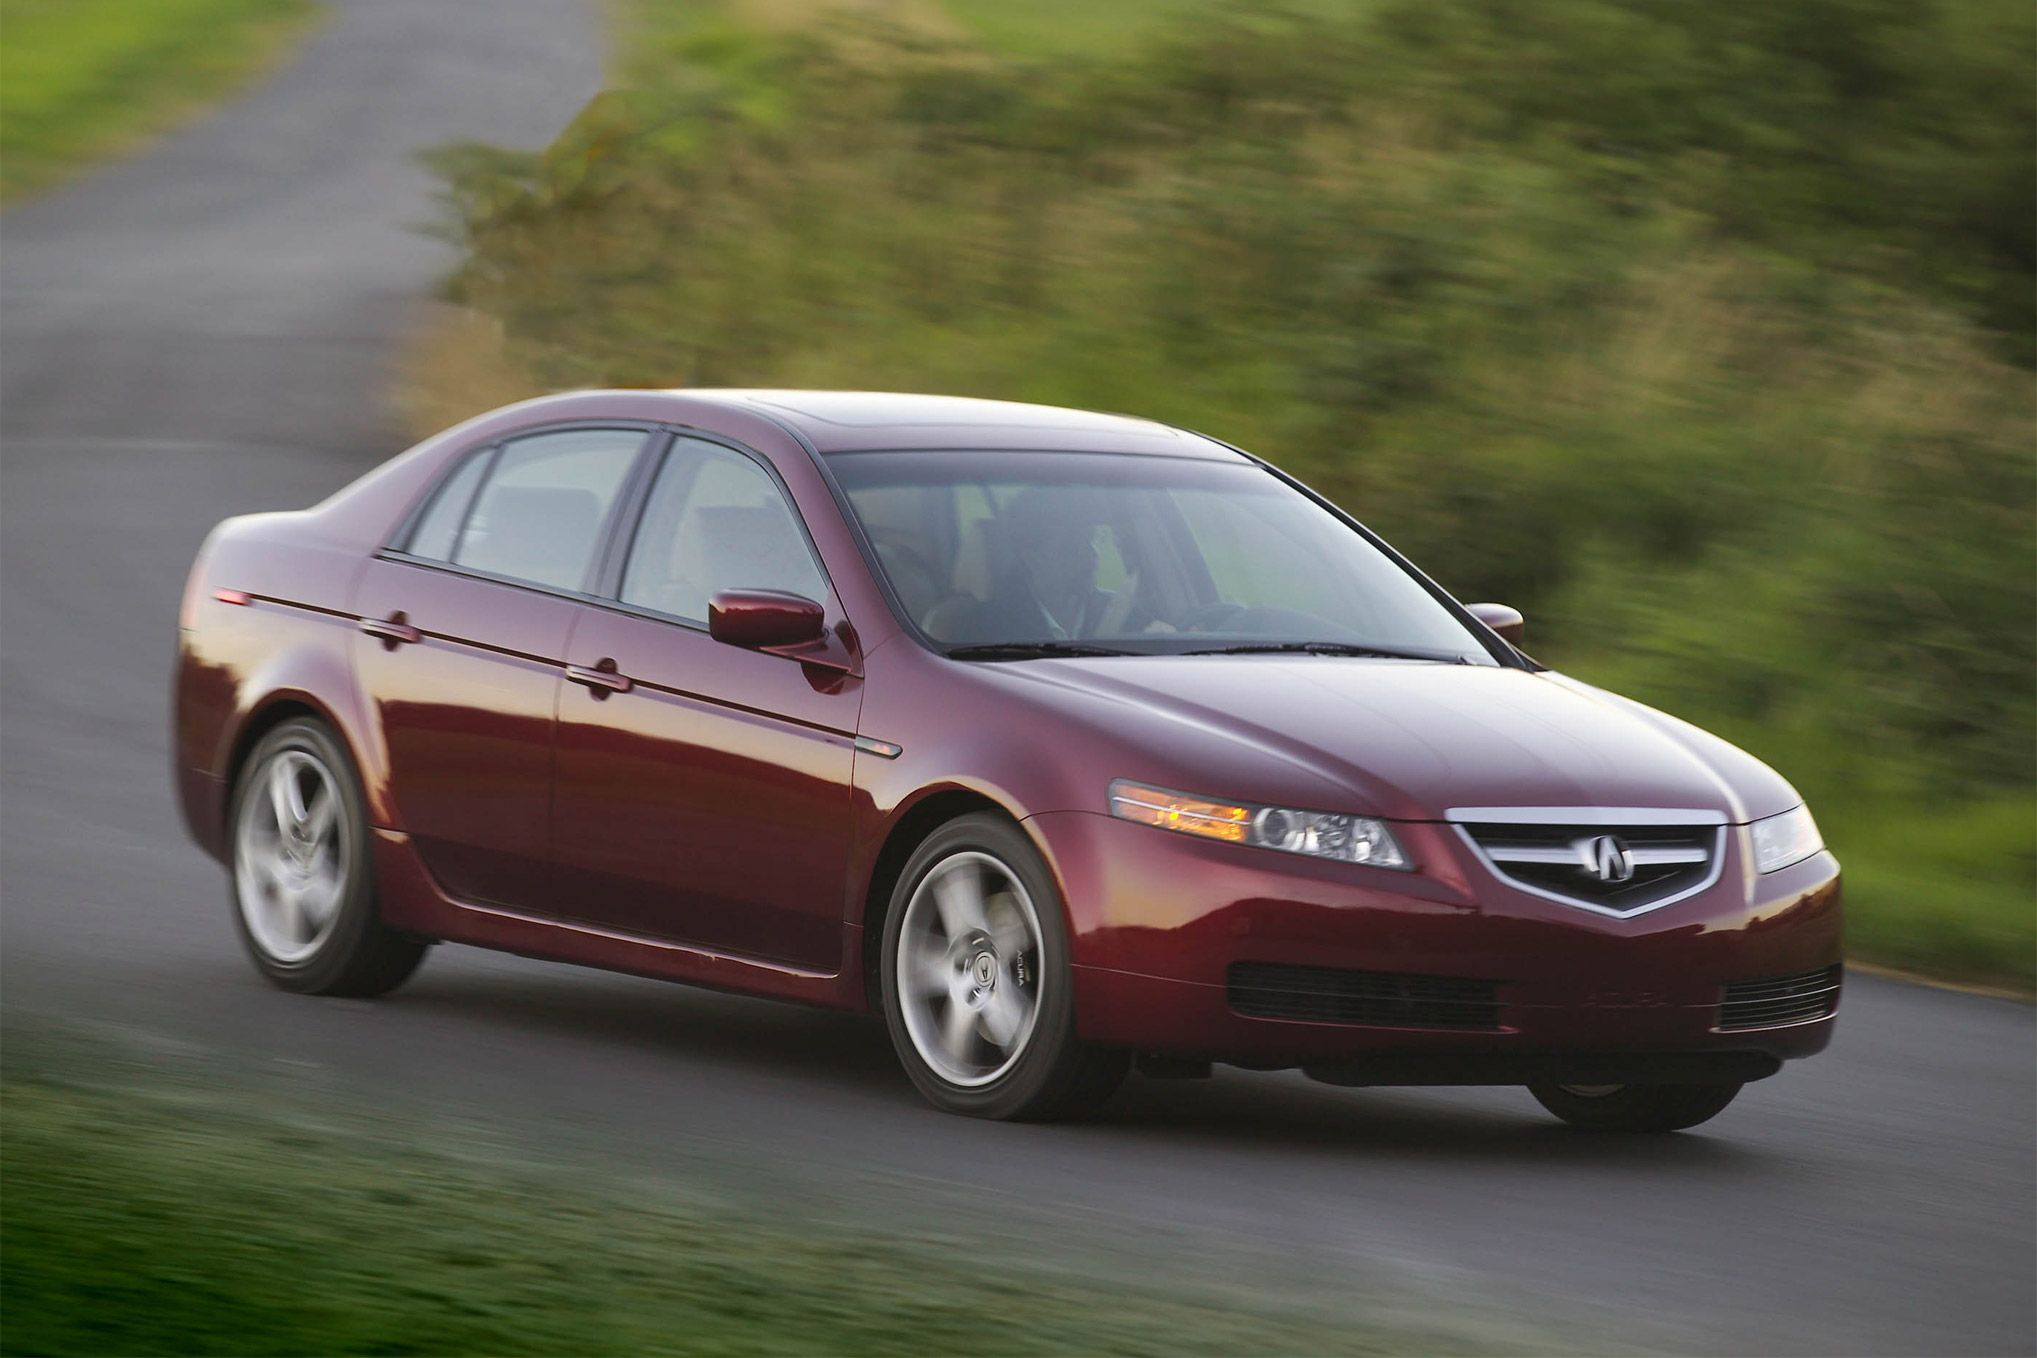 Best Used Cars Under 10,000 Consumer Reports Acura tl